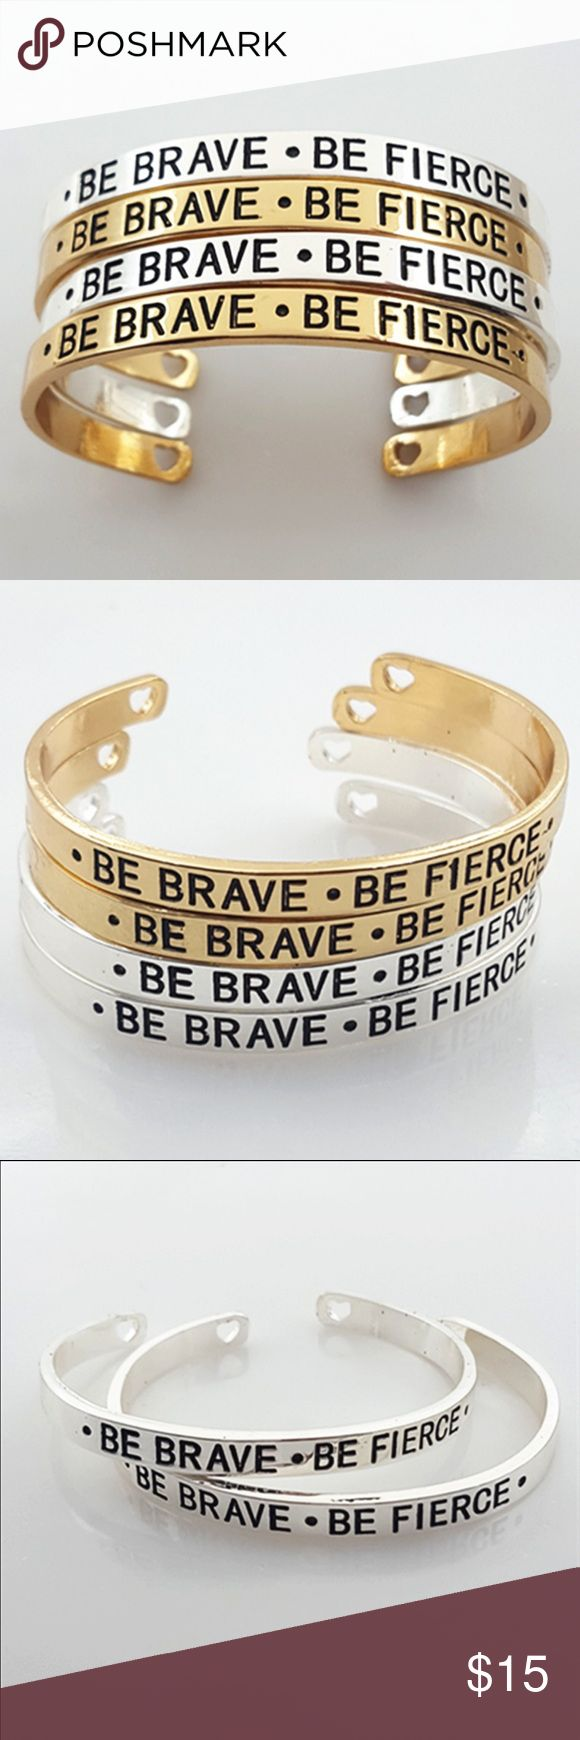 """Be Brave Bangle """"Be Brave Be Fierce"""" inspiration bangle sterling silver plated or 18k gold plated. Gorgeous reminder of who you are and to always do what you want with your life. One size fits all wrists. Choose the precious metal of 18k gold or sterling silver at point of purchase. Unedited Boutiques Jewelry Bracelets"""